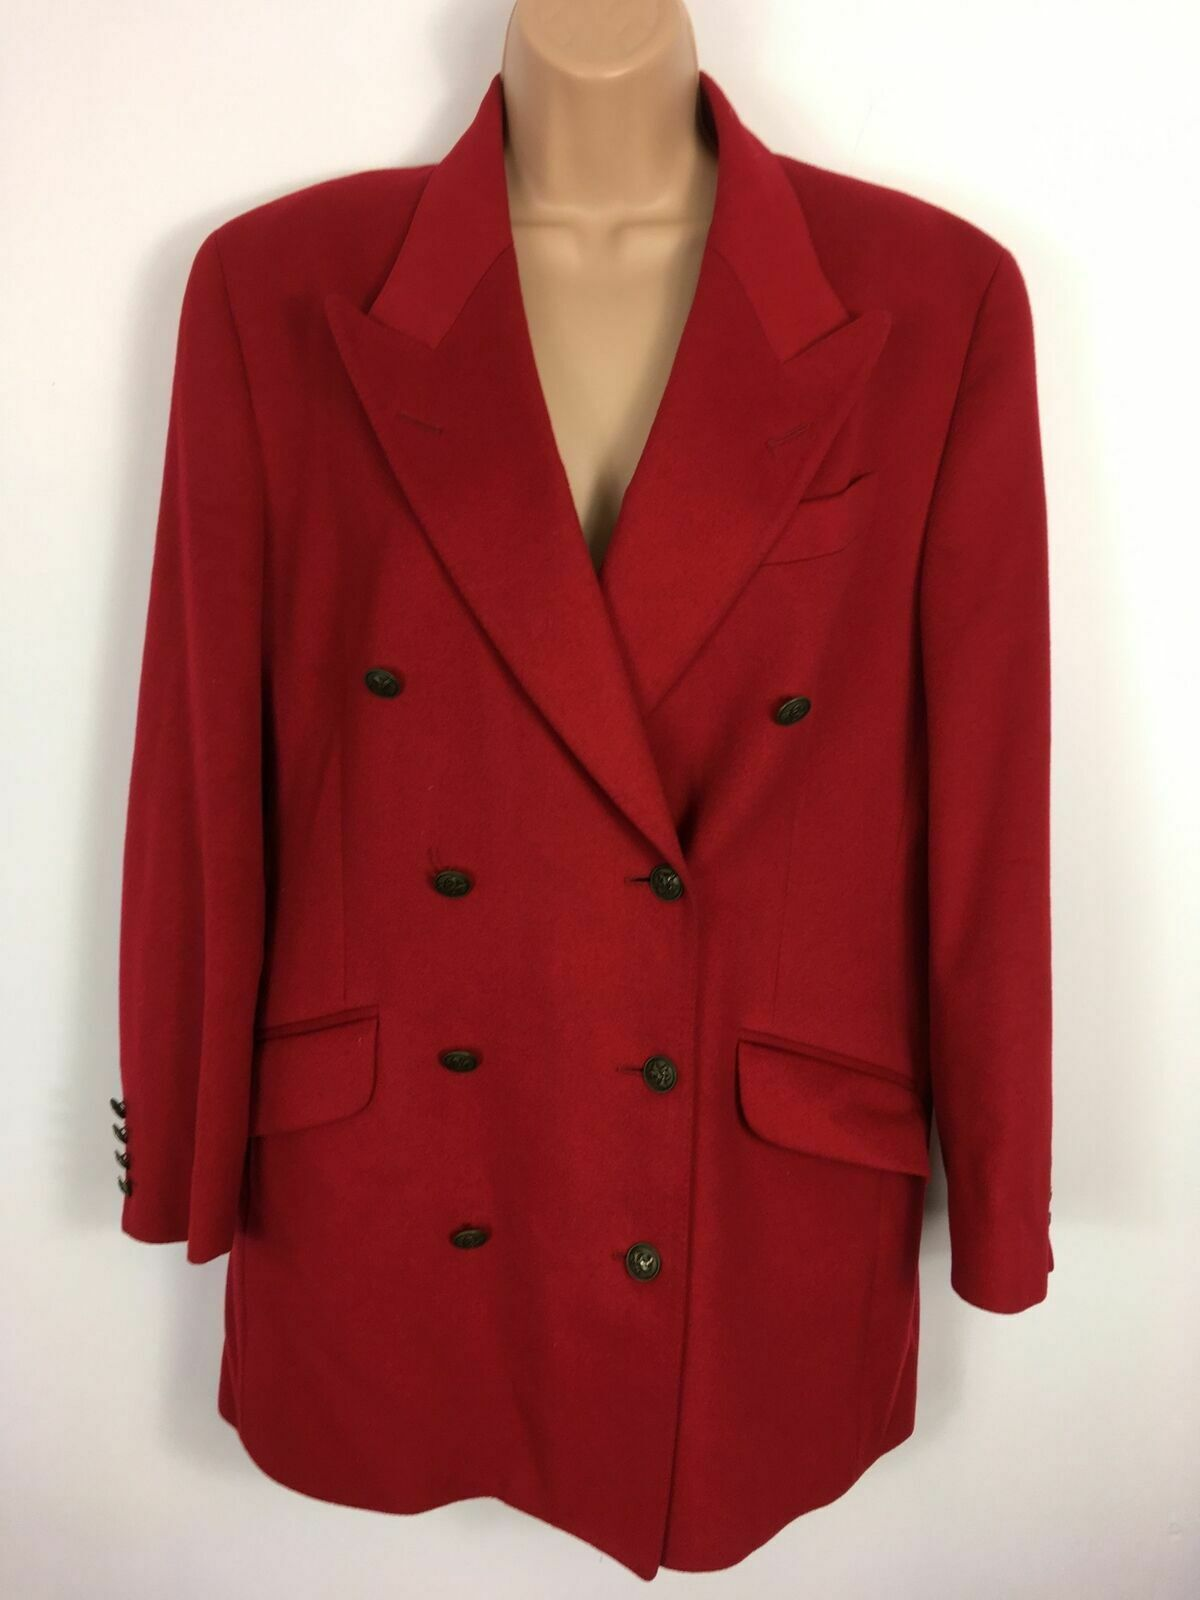 WOMENS AUSTIN REED RED WOOL DOUBLE BREASTED BUGLE BUTTON SMART WINTER COAT